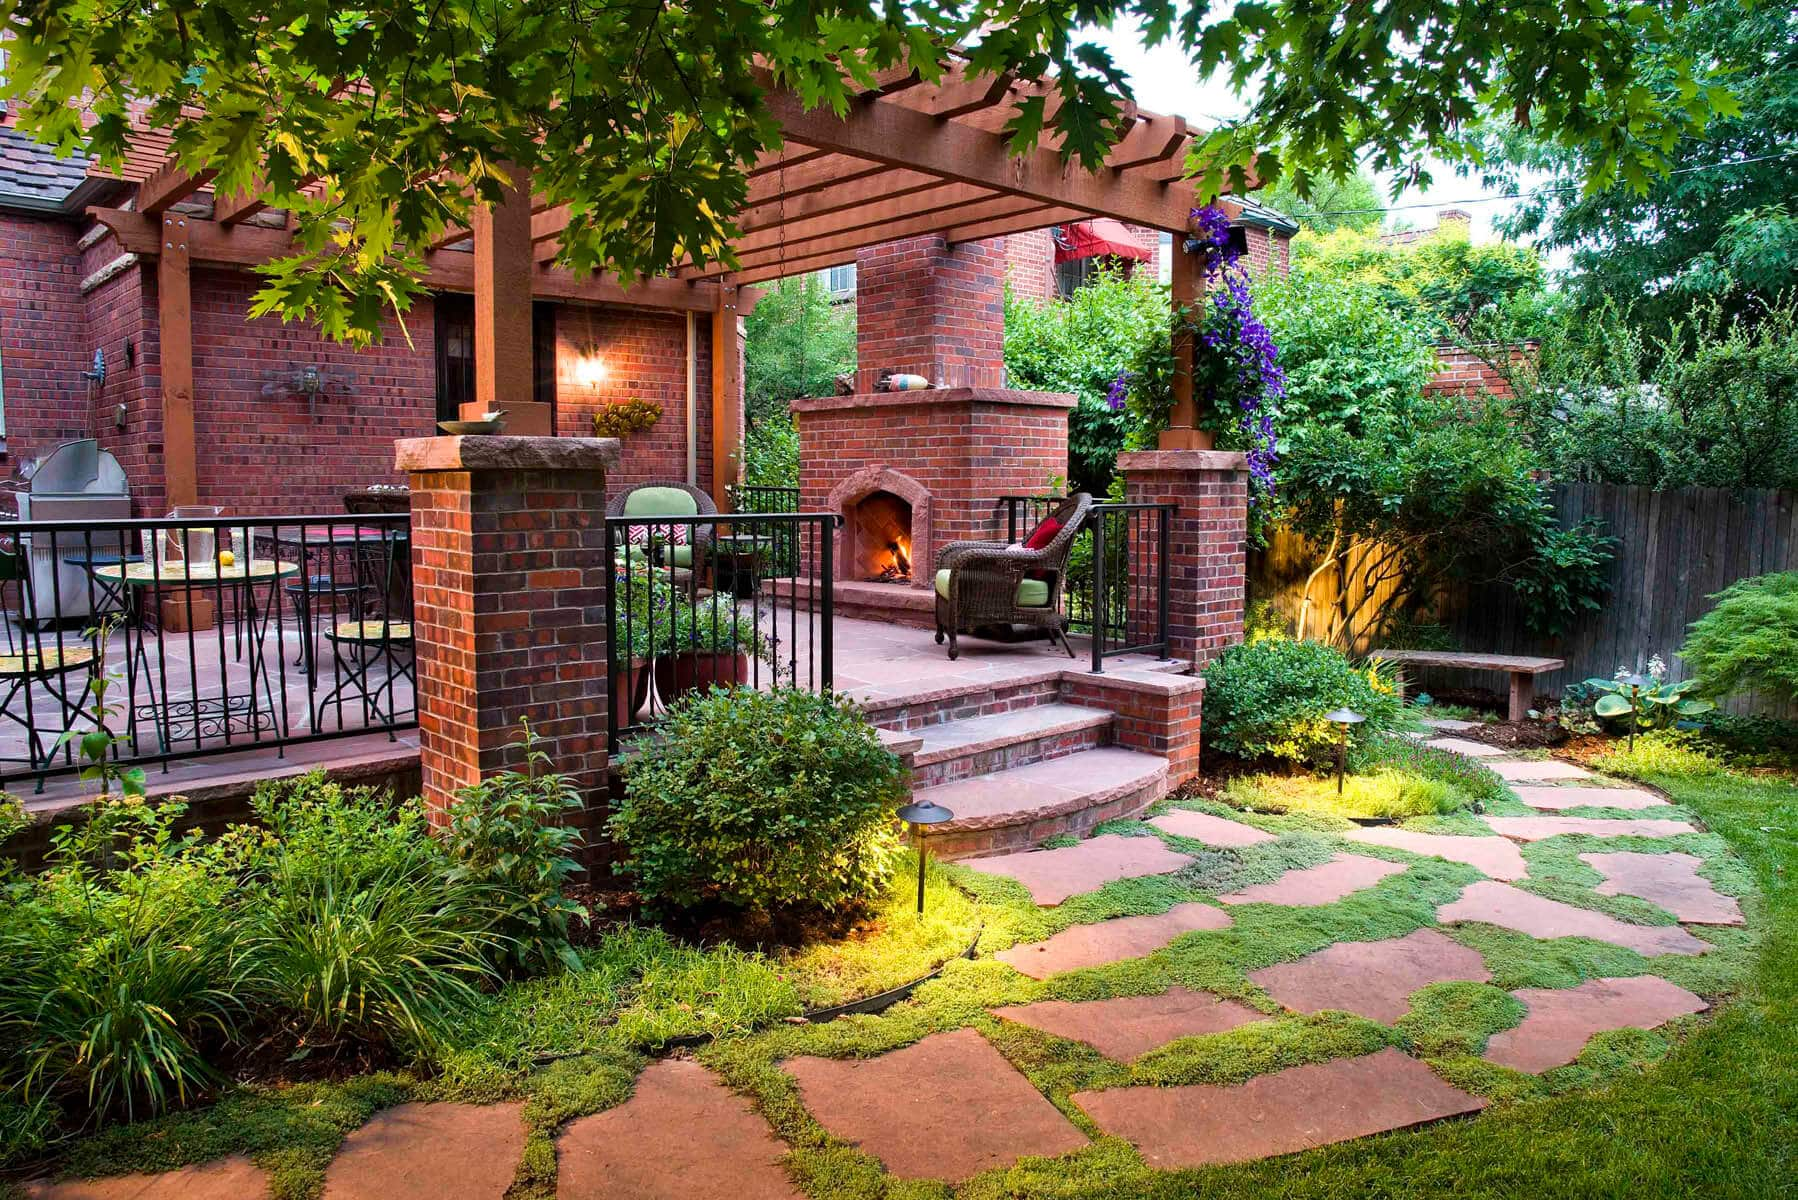 Before & After: A Small Backyard Gets a Cottage-Inspired ...